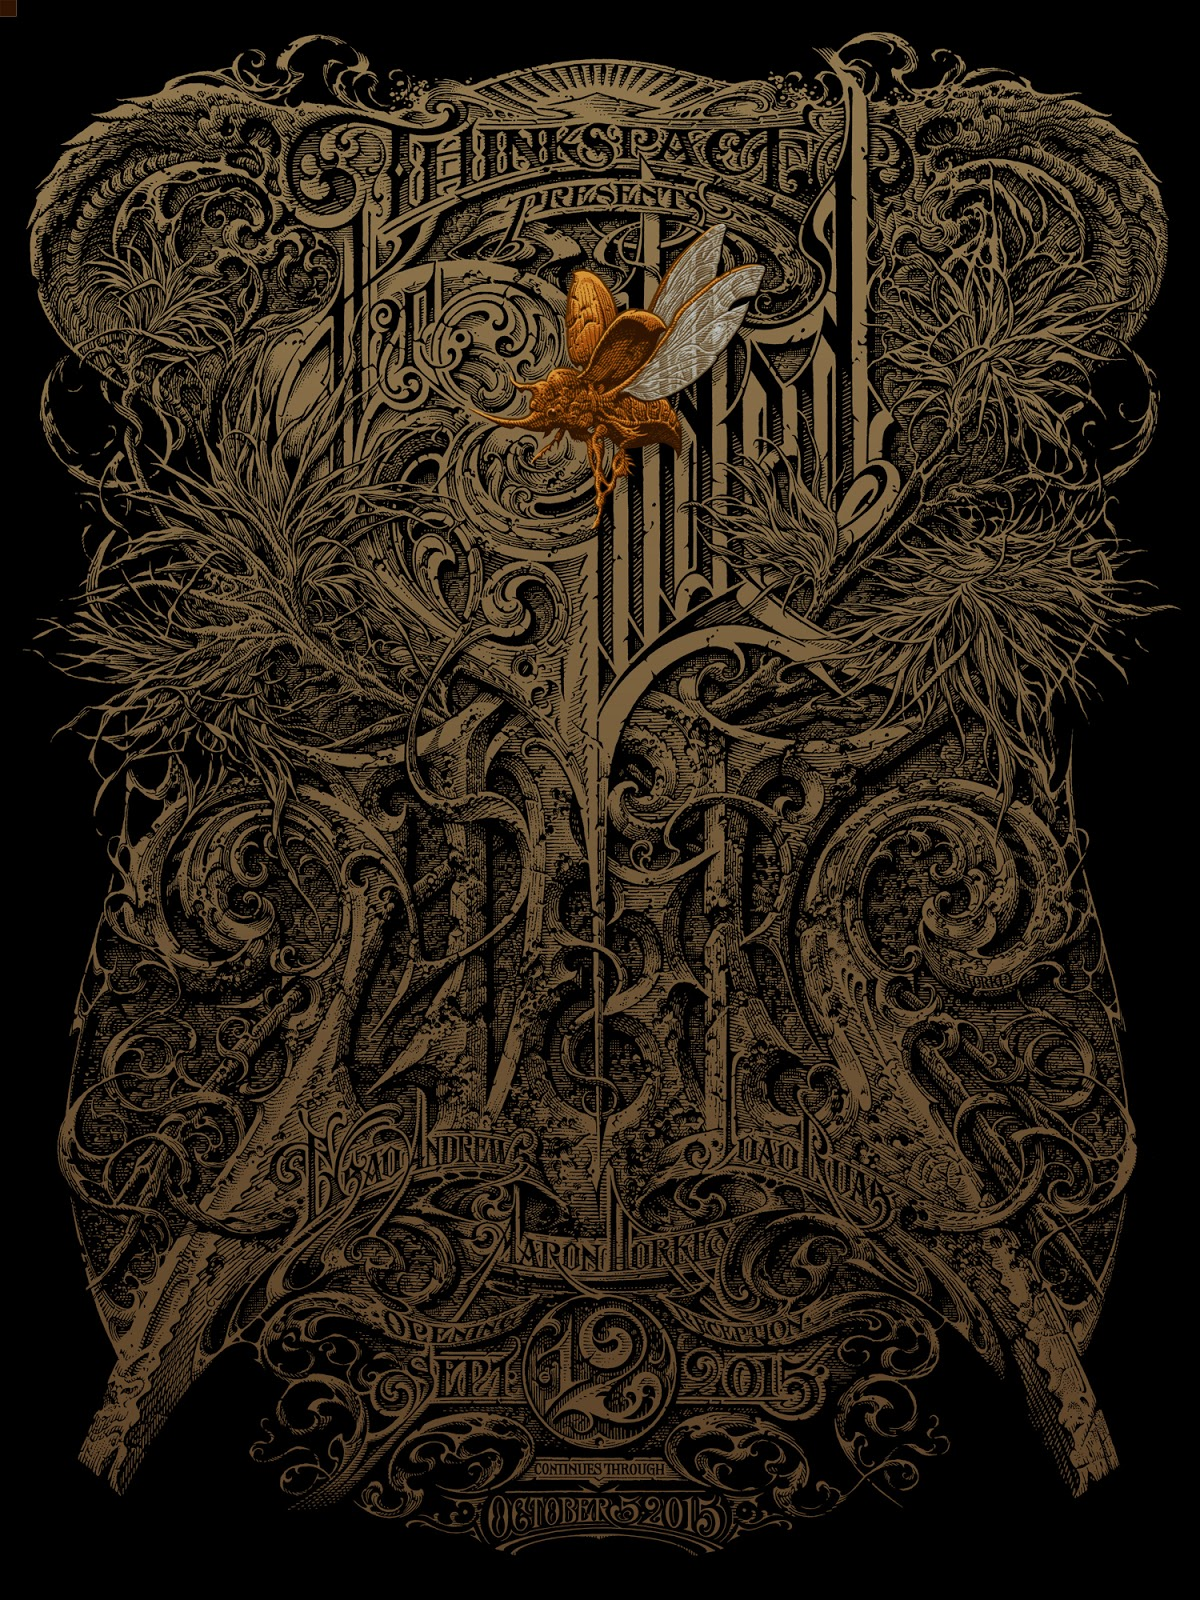 The Gilded Tarot Images On: BLACKOSPREY X MEGAFAUNA: The Gilded Age Poster (ザ・ギルデッド